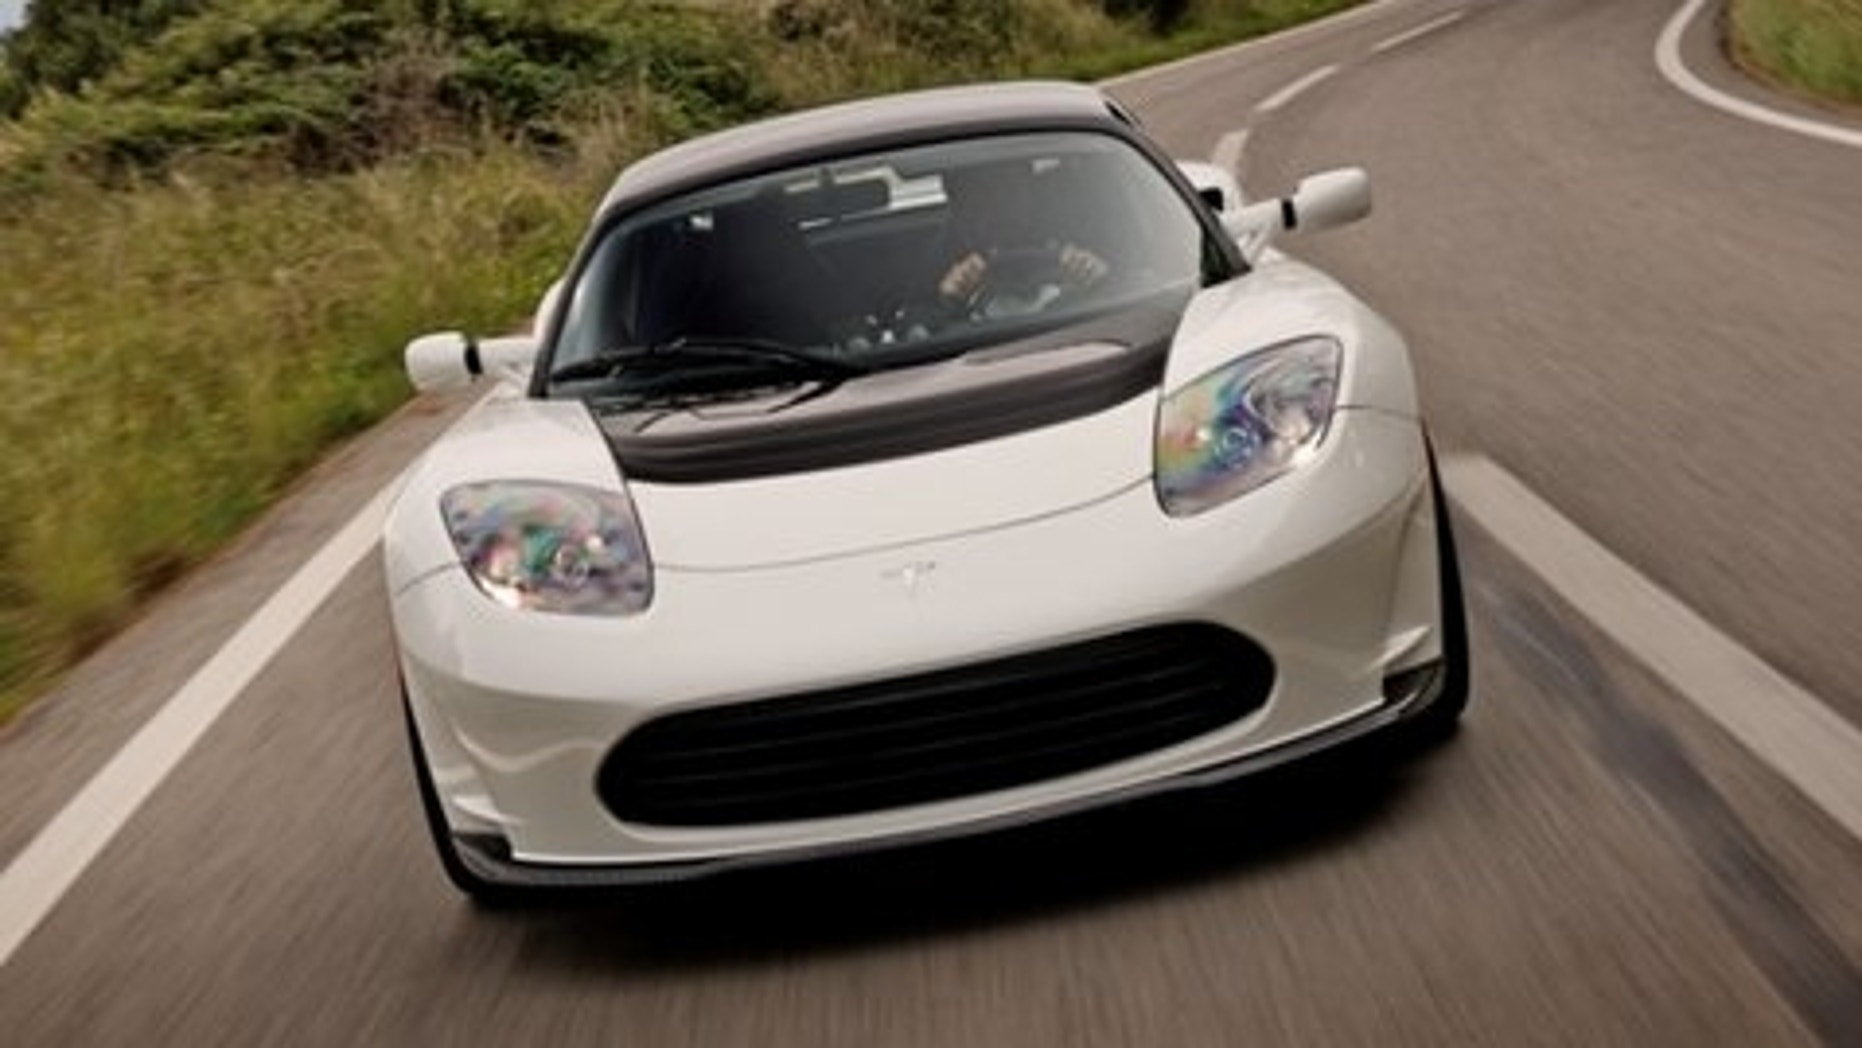 Tesla Motors First Car The Roadster Has Been Out Of Production For A While Now But That Hasn T Stopped Electric Company From Offering New